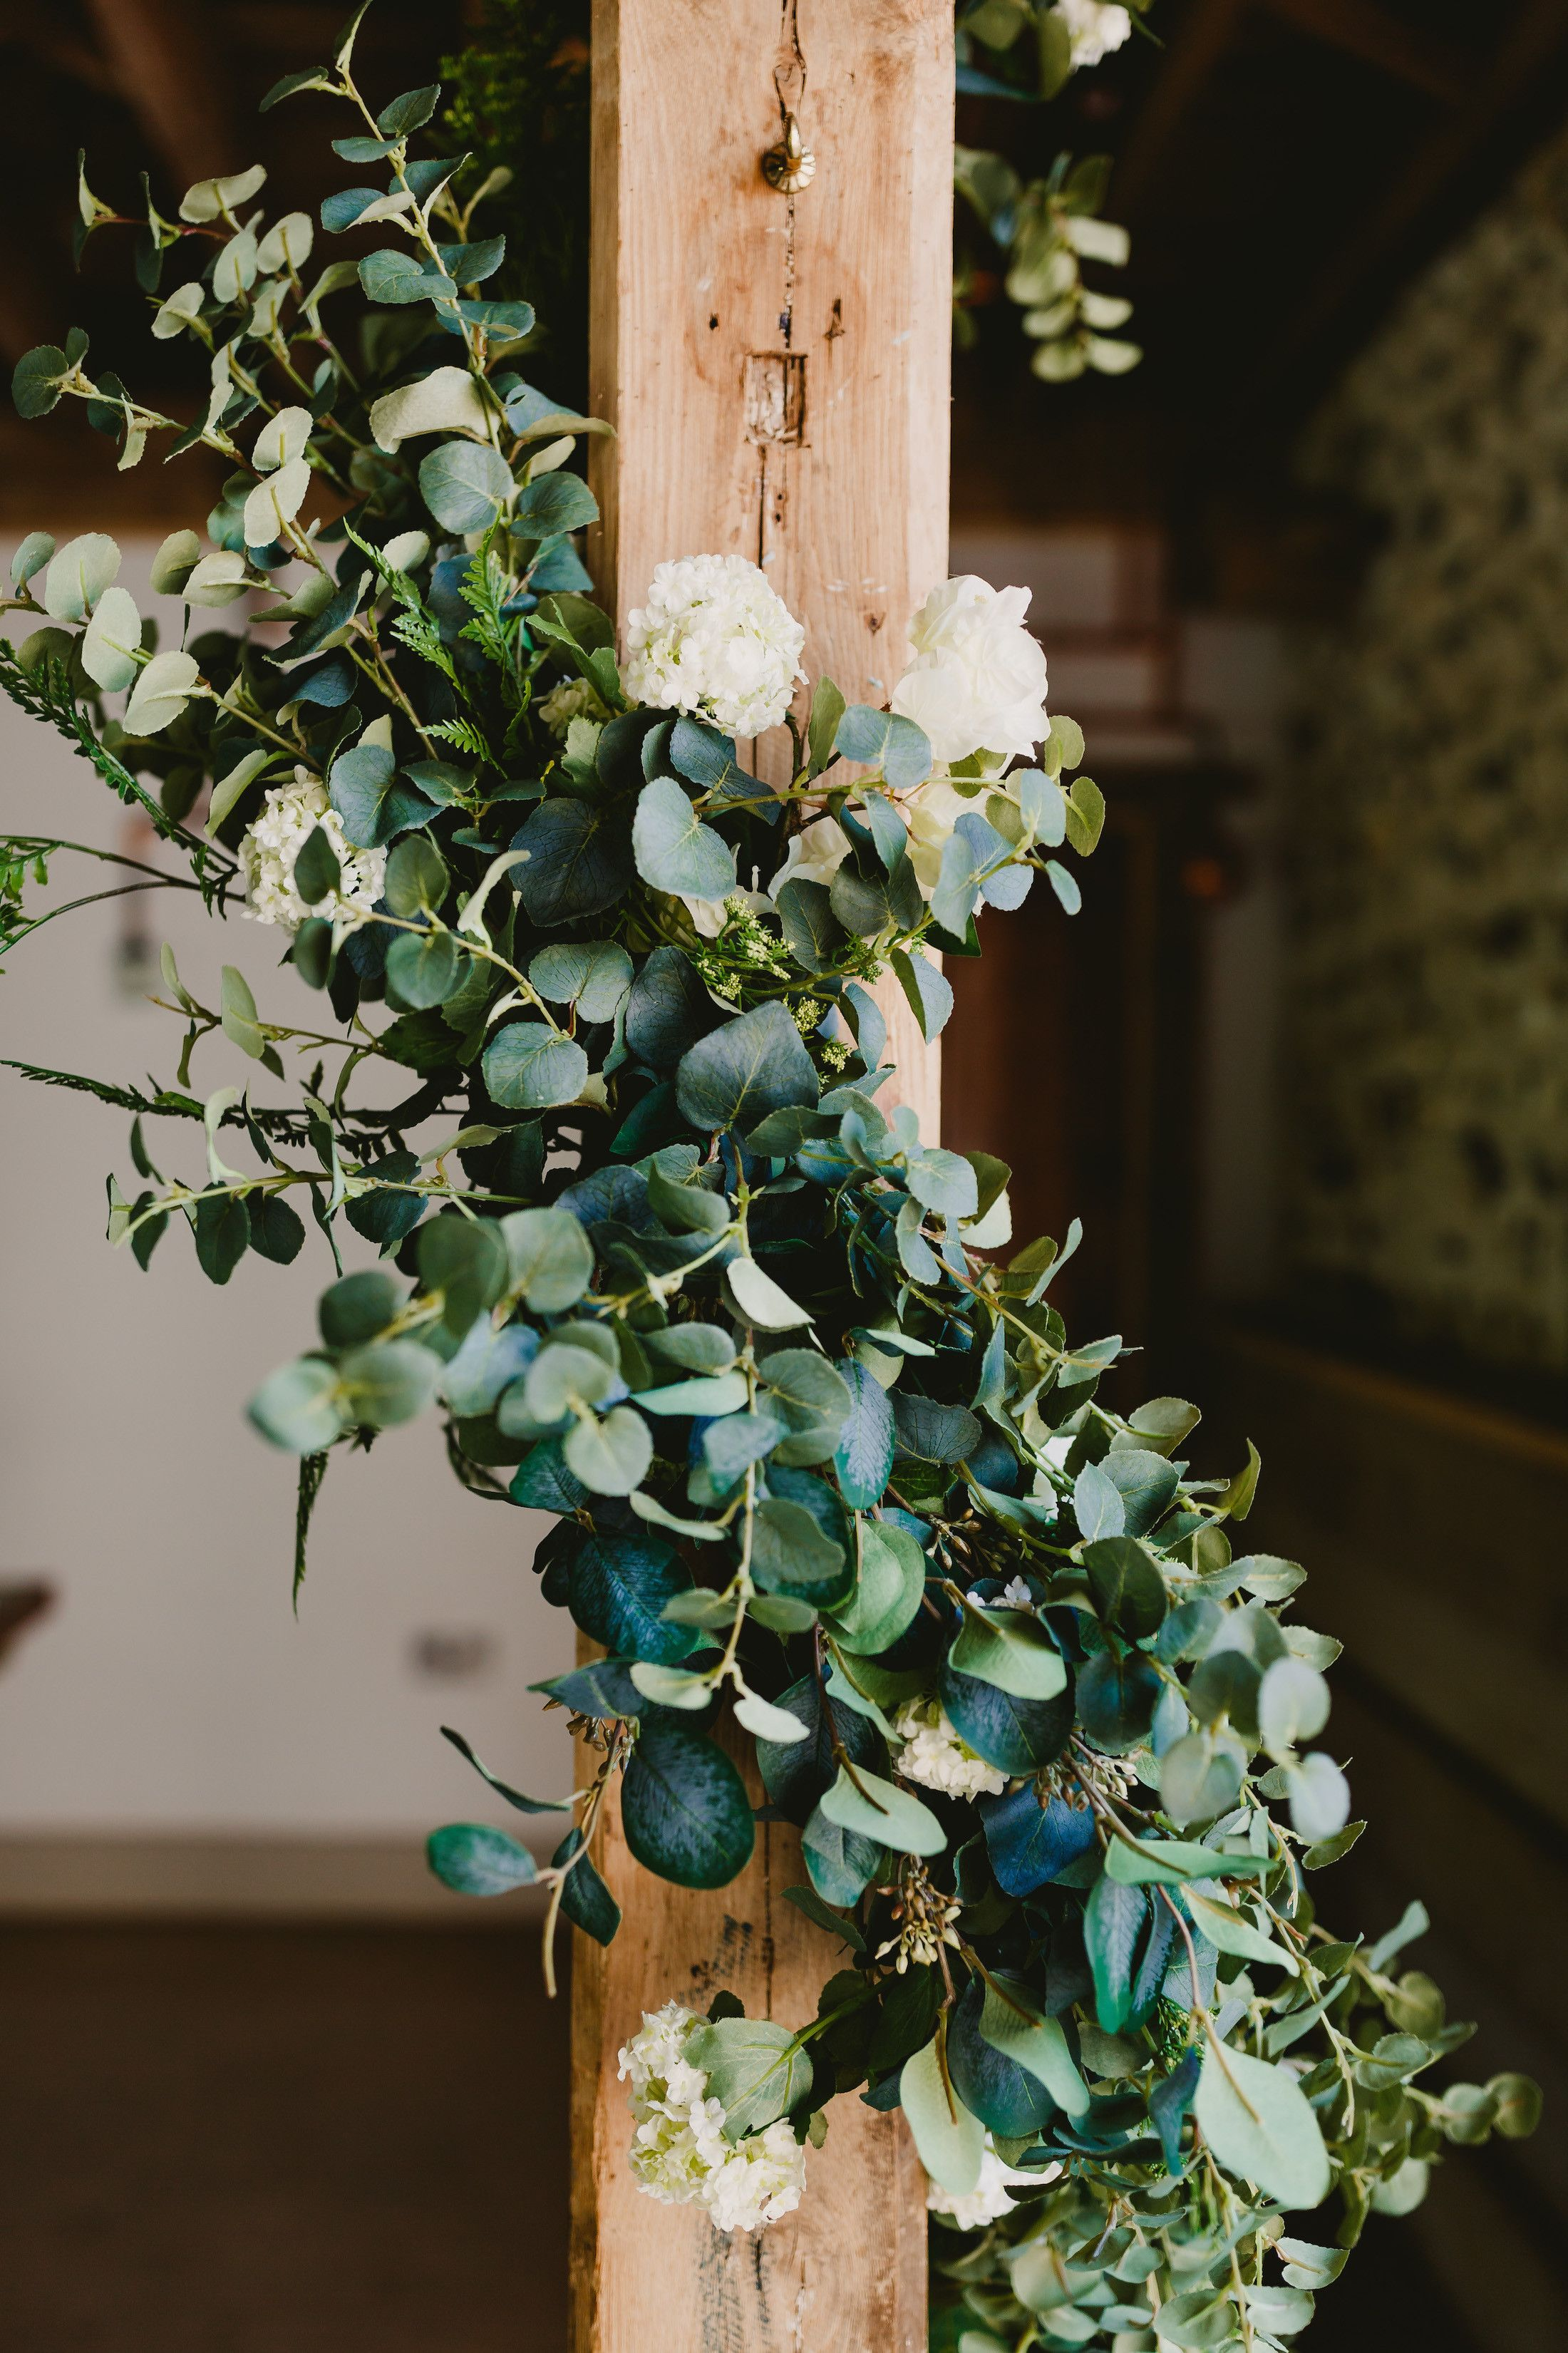 Faux greenery wrapped around a beam for a barn wedding